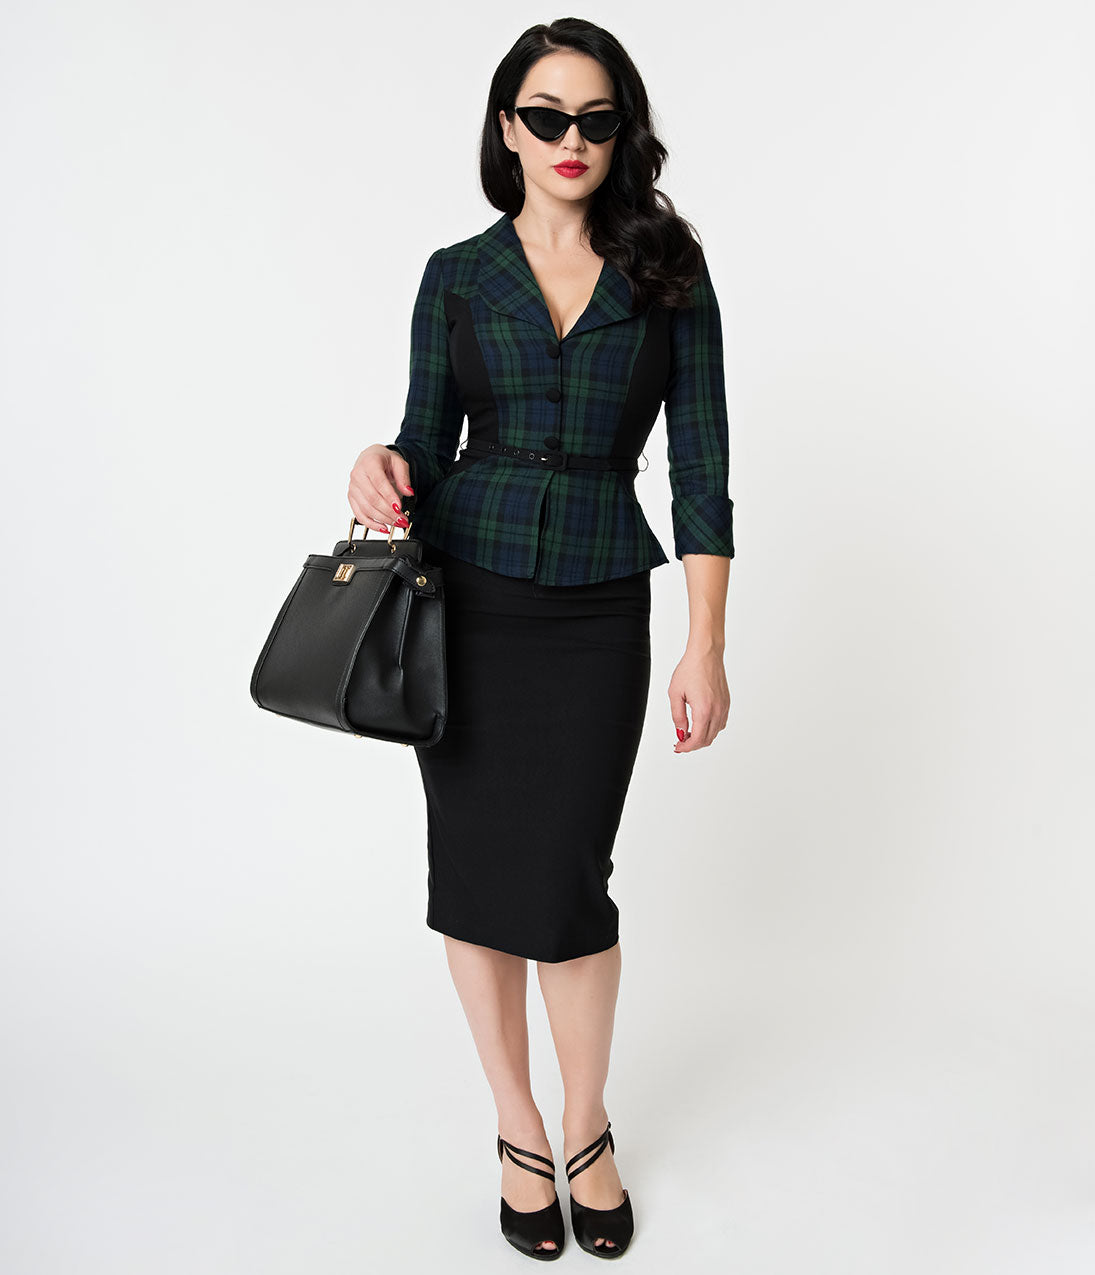 Women's 1940s Victory Suits and Utility Suits Stop Staring 1940S Navy  Emerald Plaid Sleeved Suit Wiggle Dress $188.00 AT vintagedancer.com